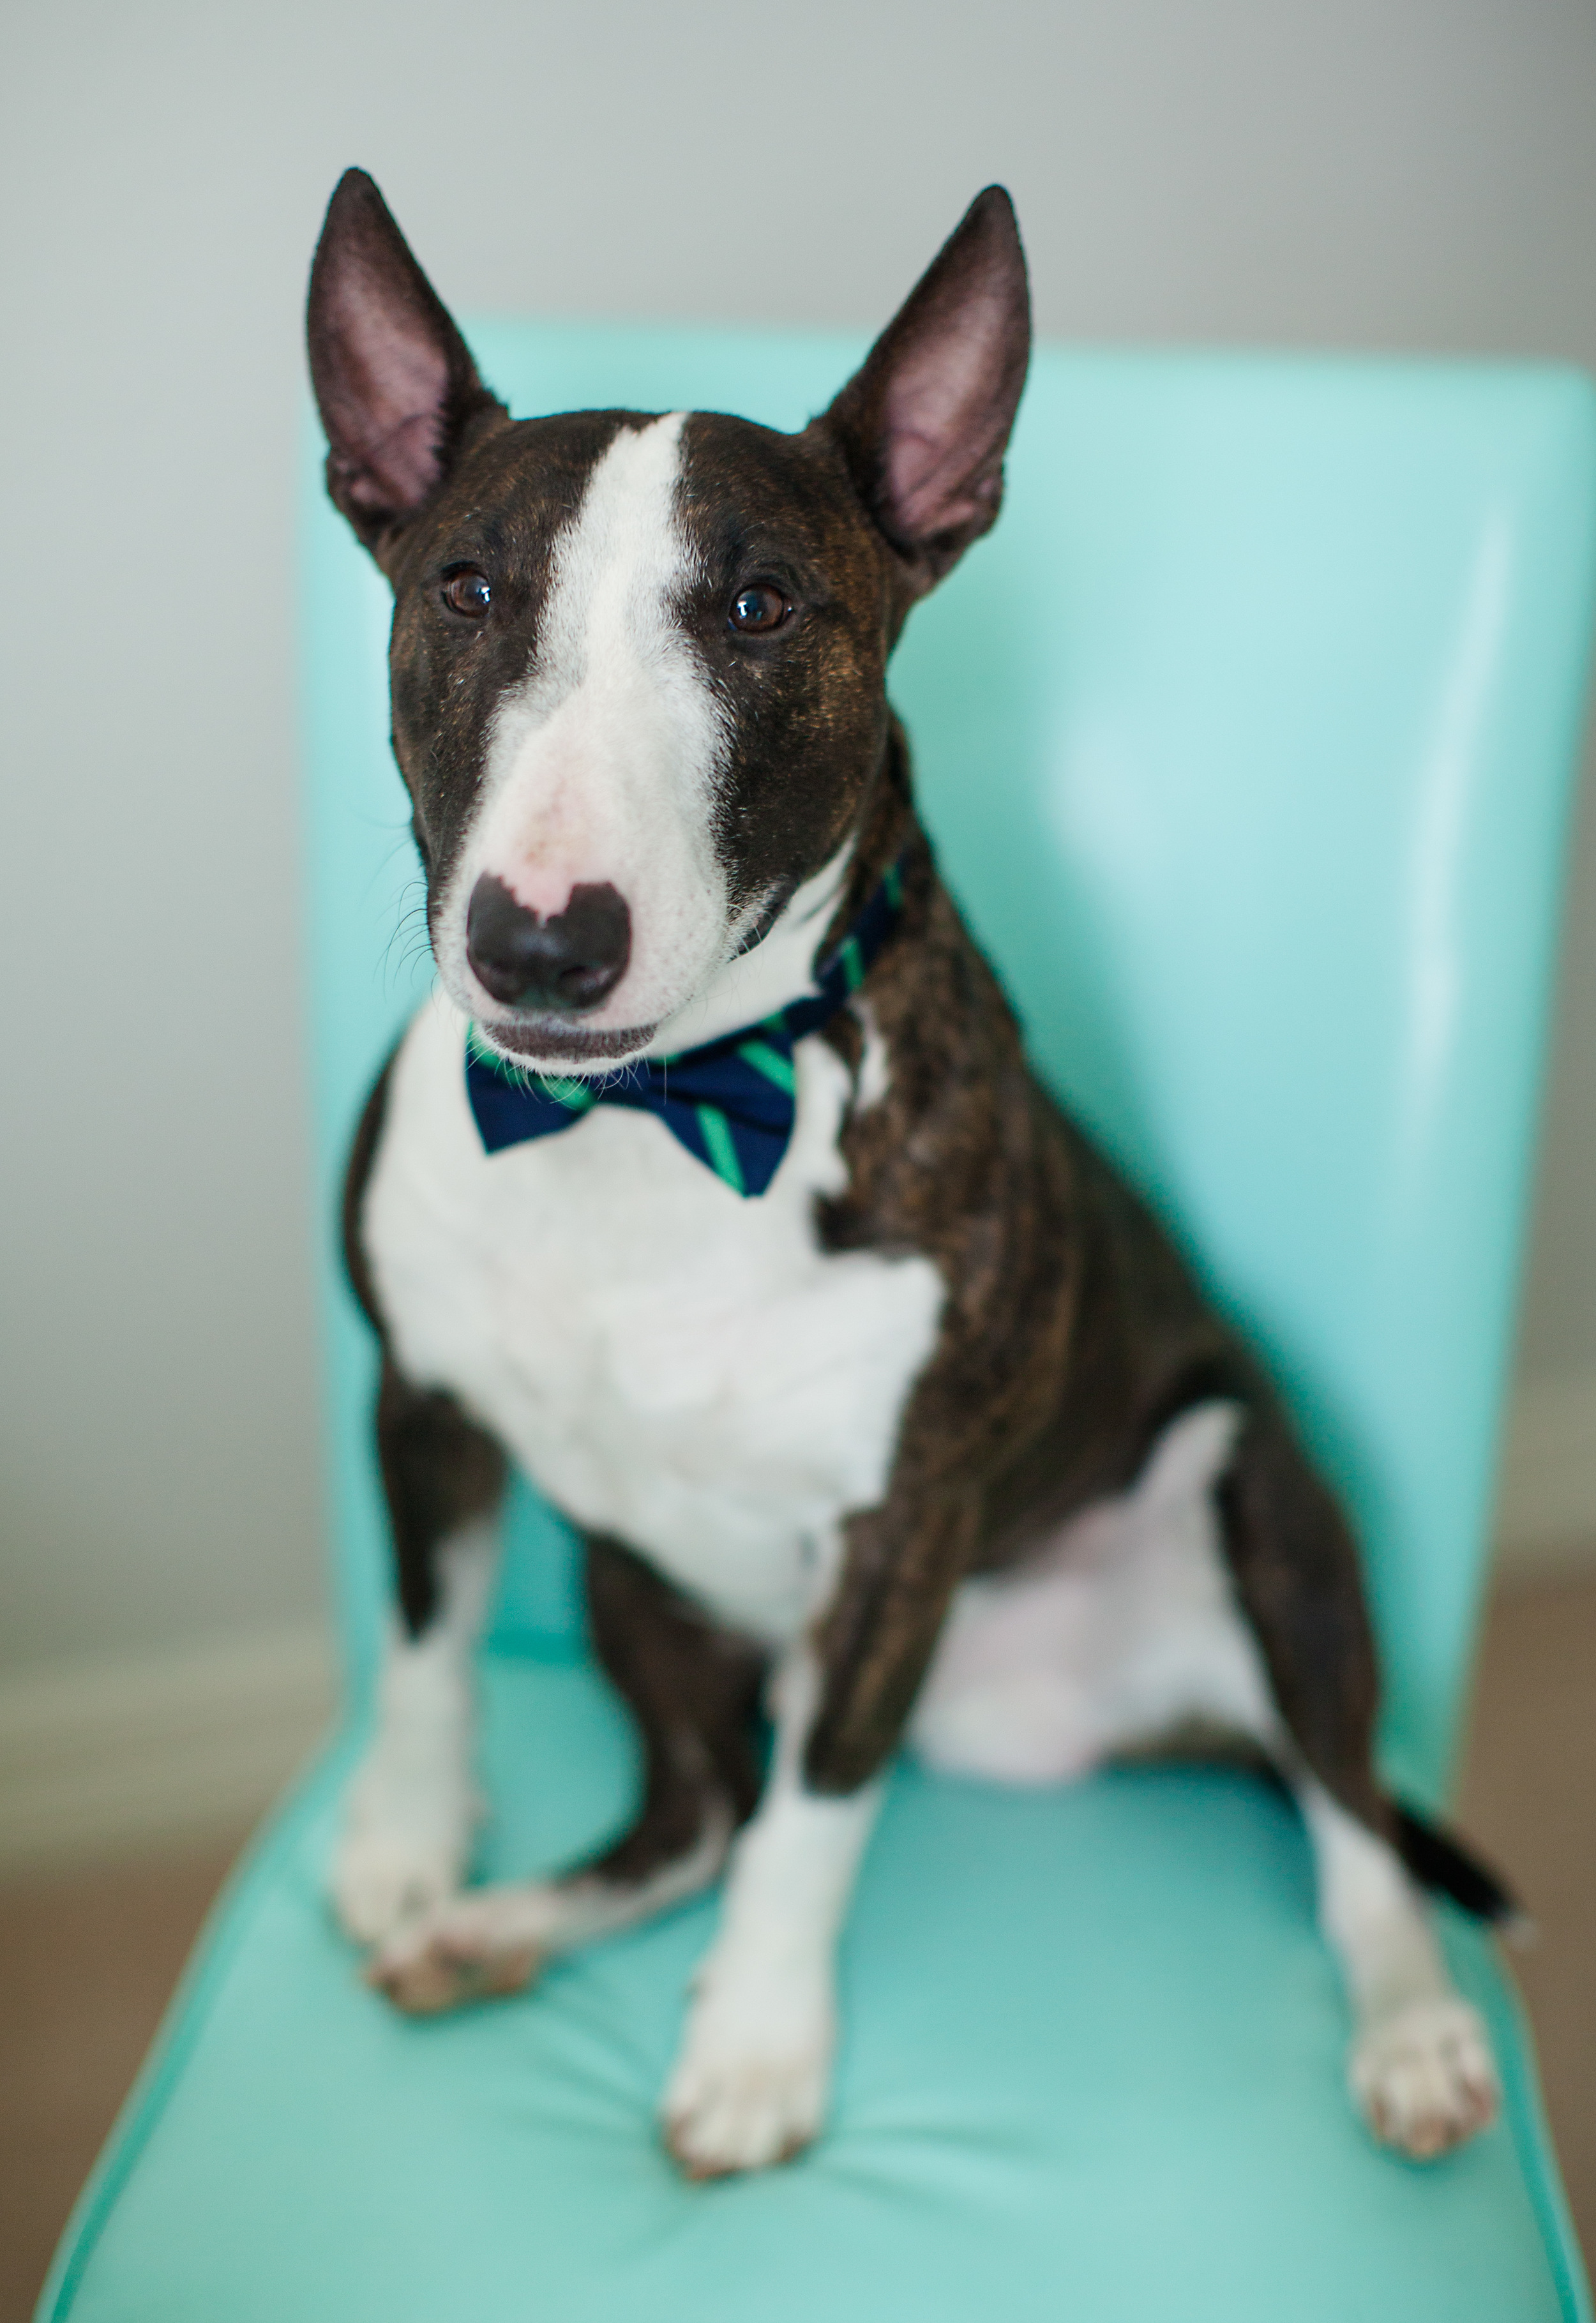 This is our miniature bullterrier, Zieg. My husband named him after one of his favorite beers!